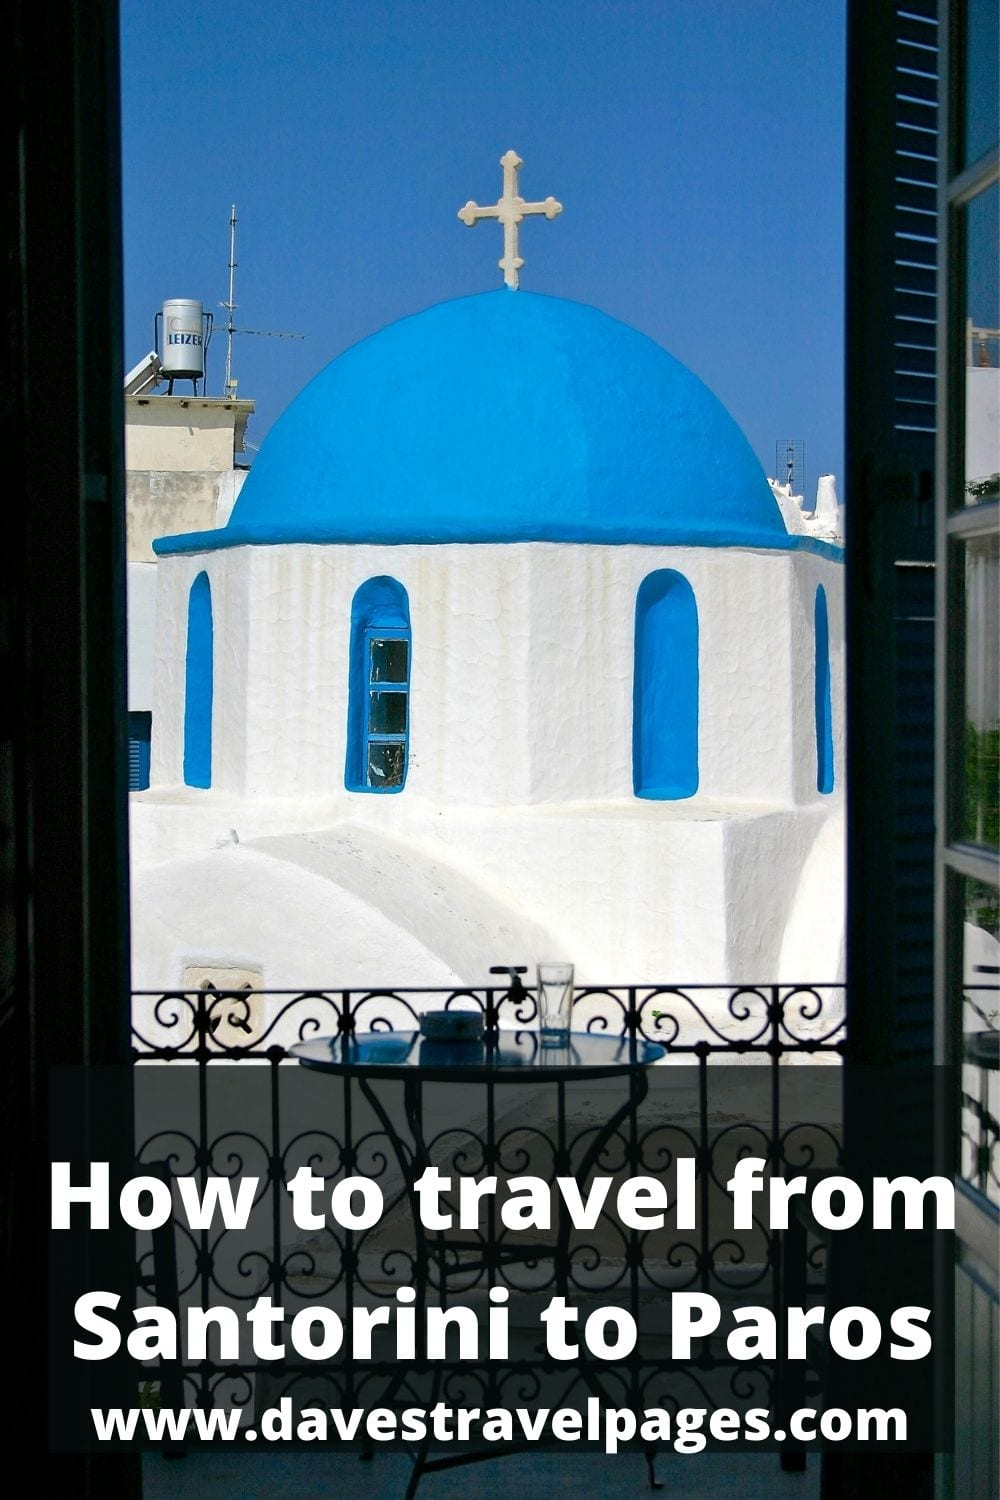 How to take the ferry from Santorini to Paros in Greece